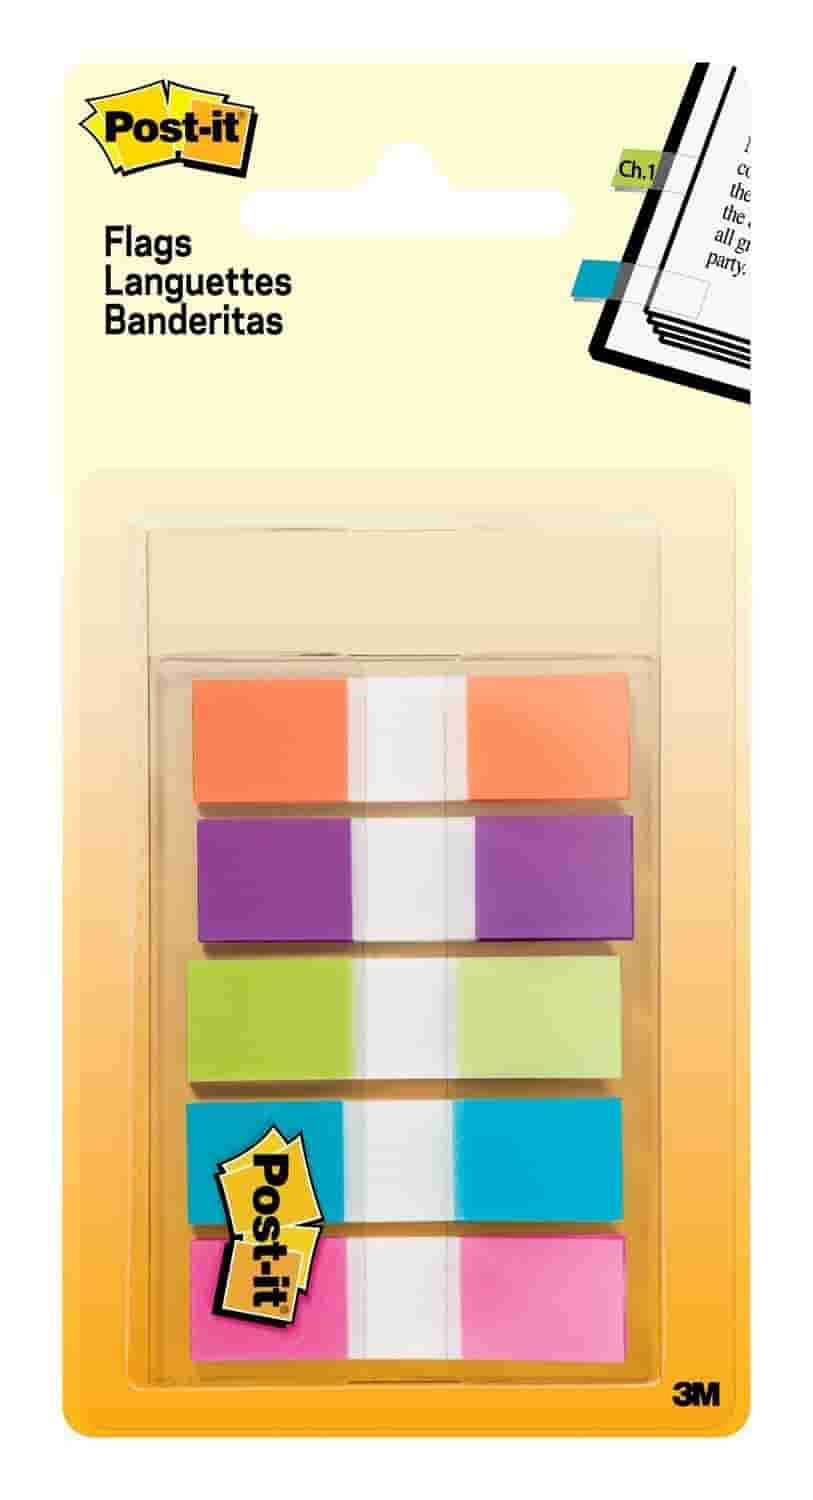 Post-it Flags 6835CB2 Page Flags in Portable Dispenser, 5 Bright Colors, 5 Dispensers, 20 Flags/Color